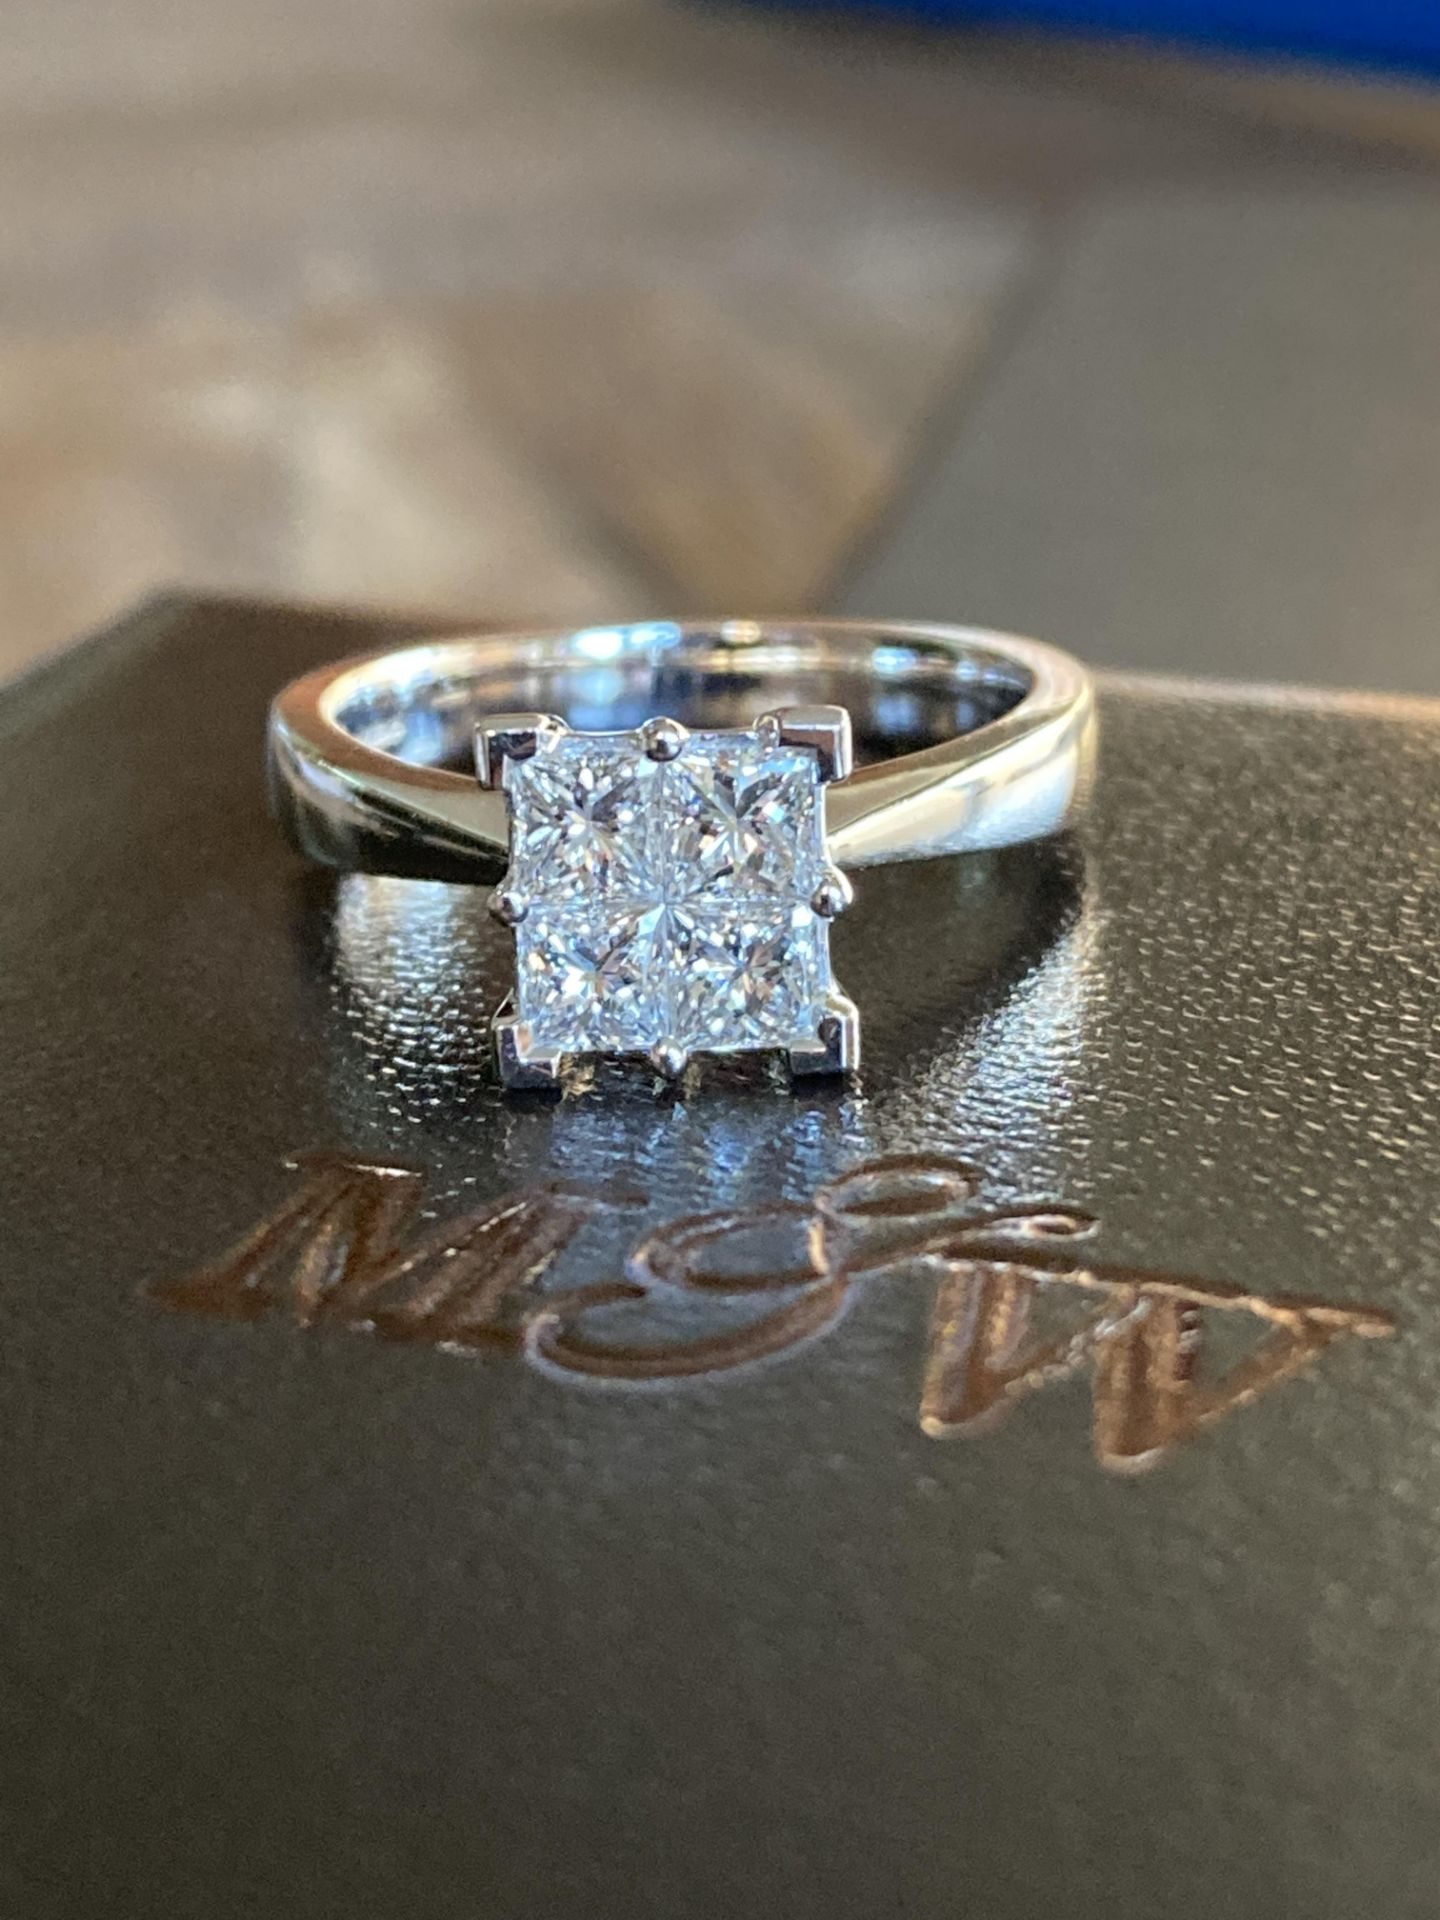 0.8-1CT APPROX. PRINCESS CUT DIAMOND RING IN 18CT WHITE GOLD - SIZE: M / WEIGHT: 5.2G - Image 3 of 4